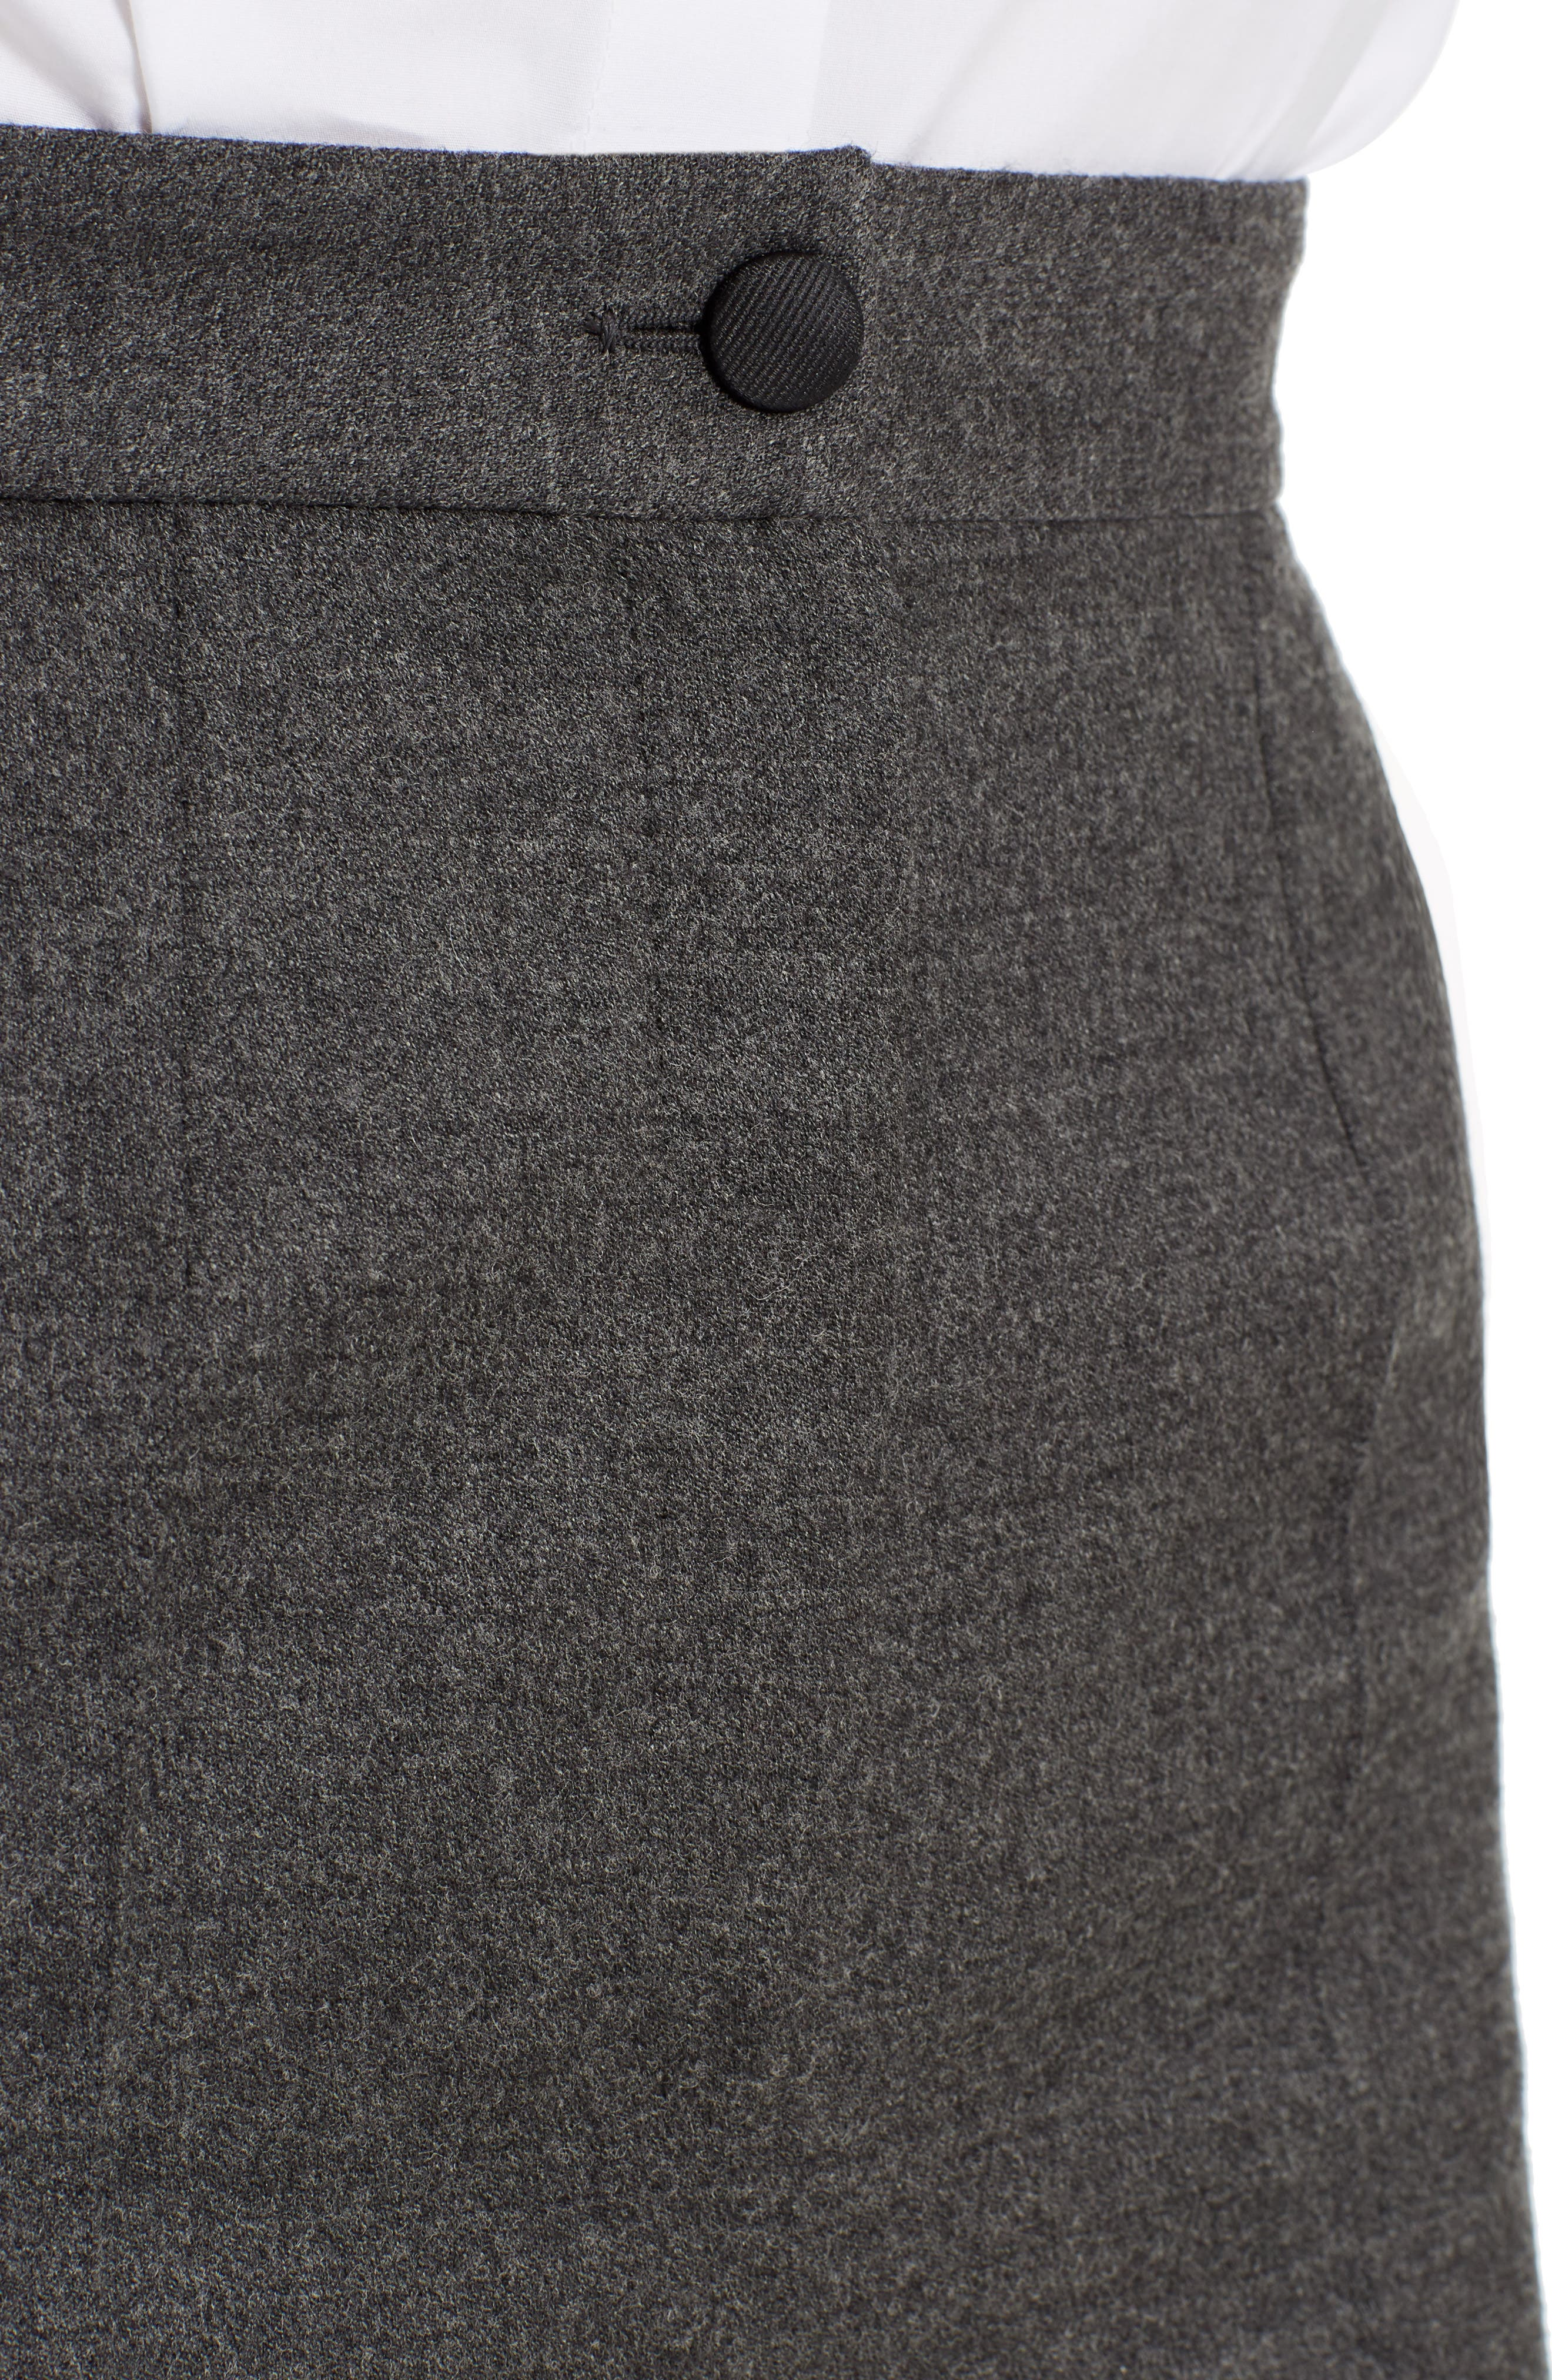 Stretch Wool Flannel Pants,                             Alternate thumbnail 4, color,                             021